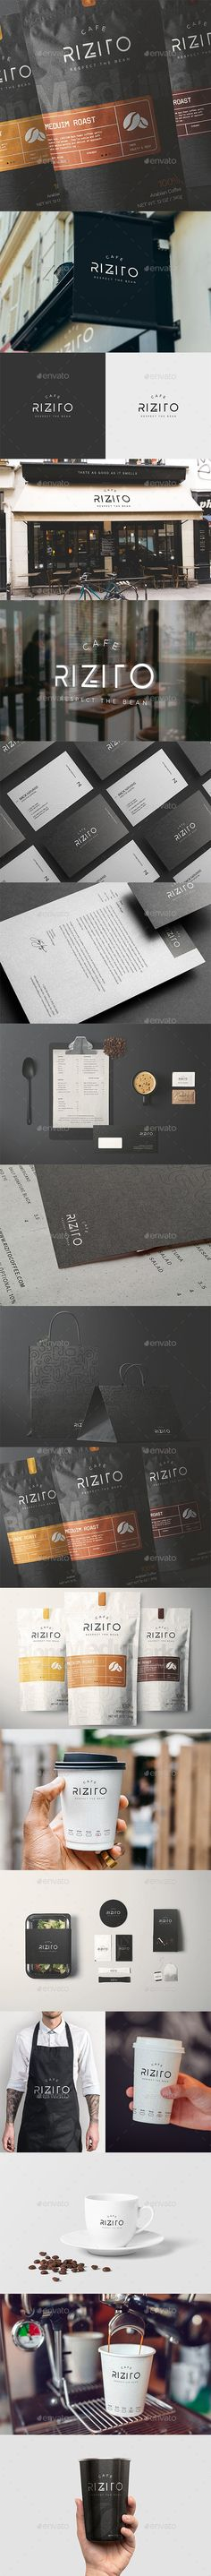 Buy Cafe Full Corporate Identity by Mastergfx on GraphicRiver. Rizito Cafe Full Corporate Identity Impress your clients with this creative and modern identity package suited for ev.